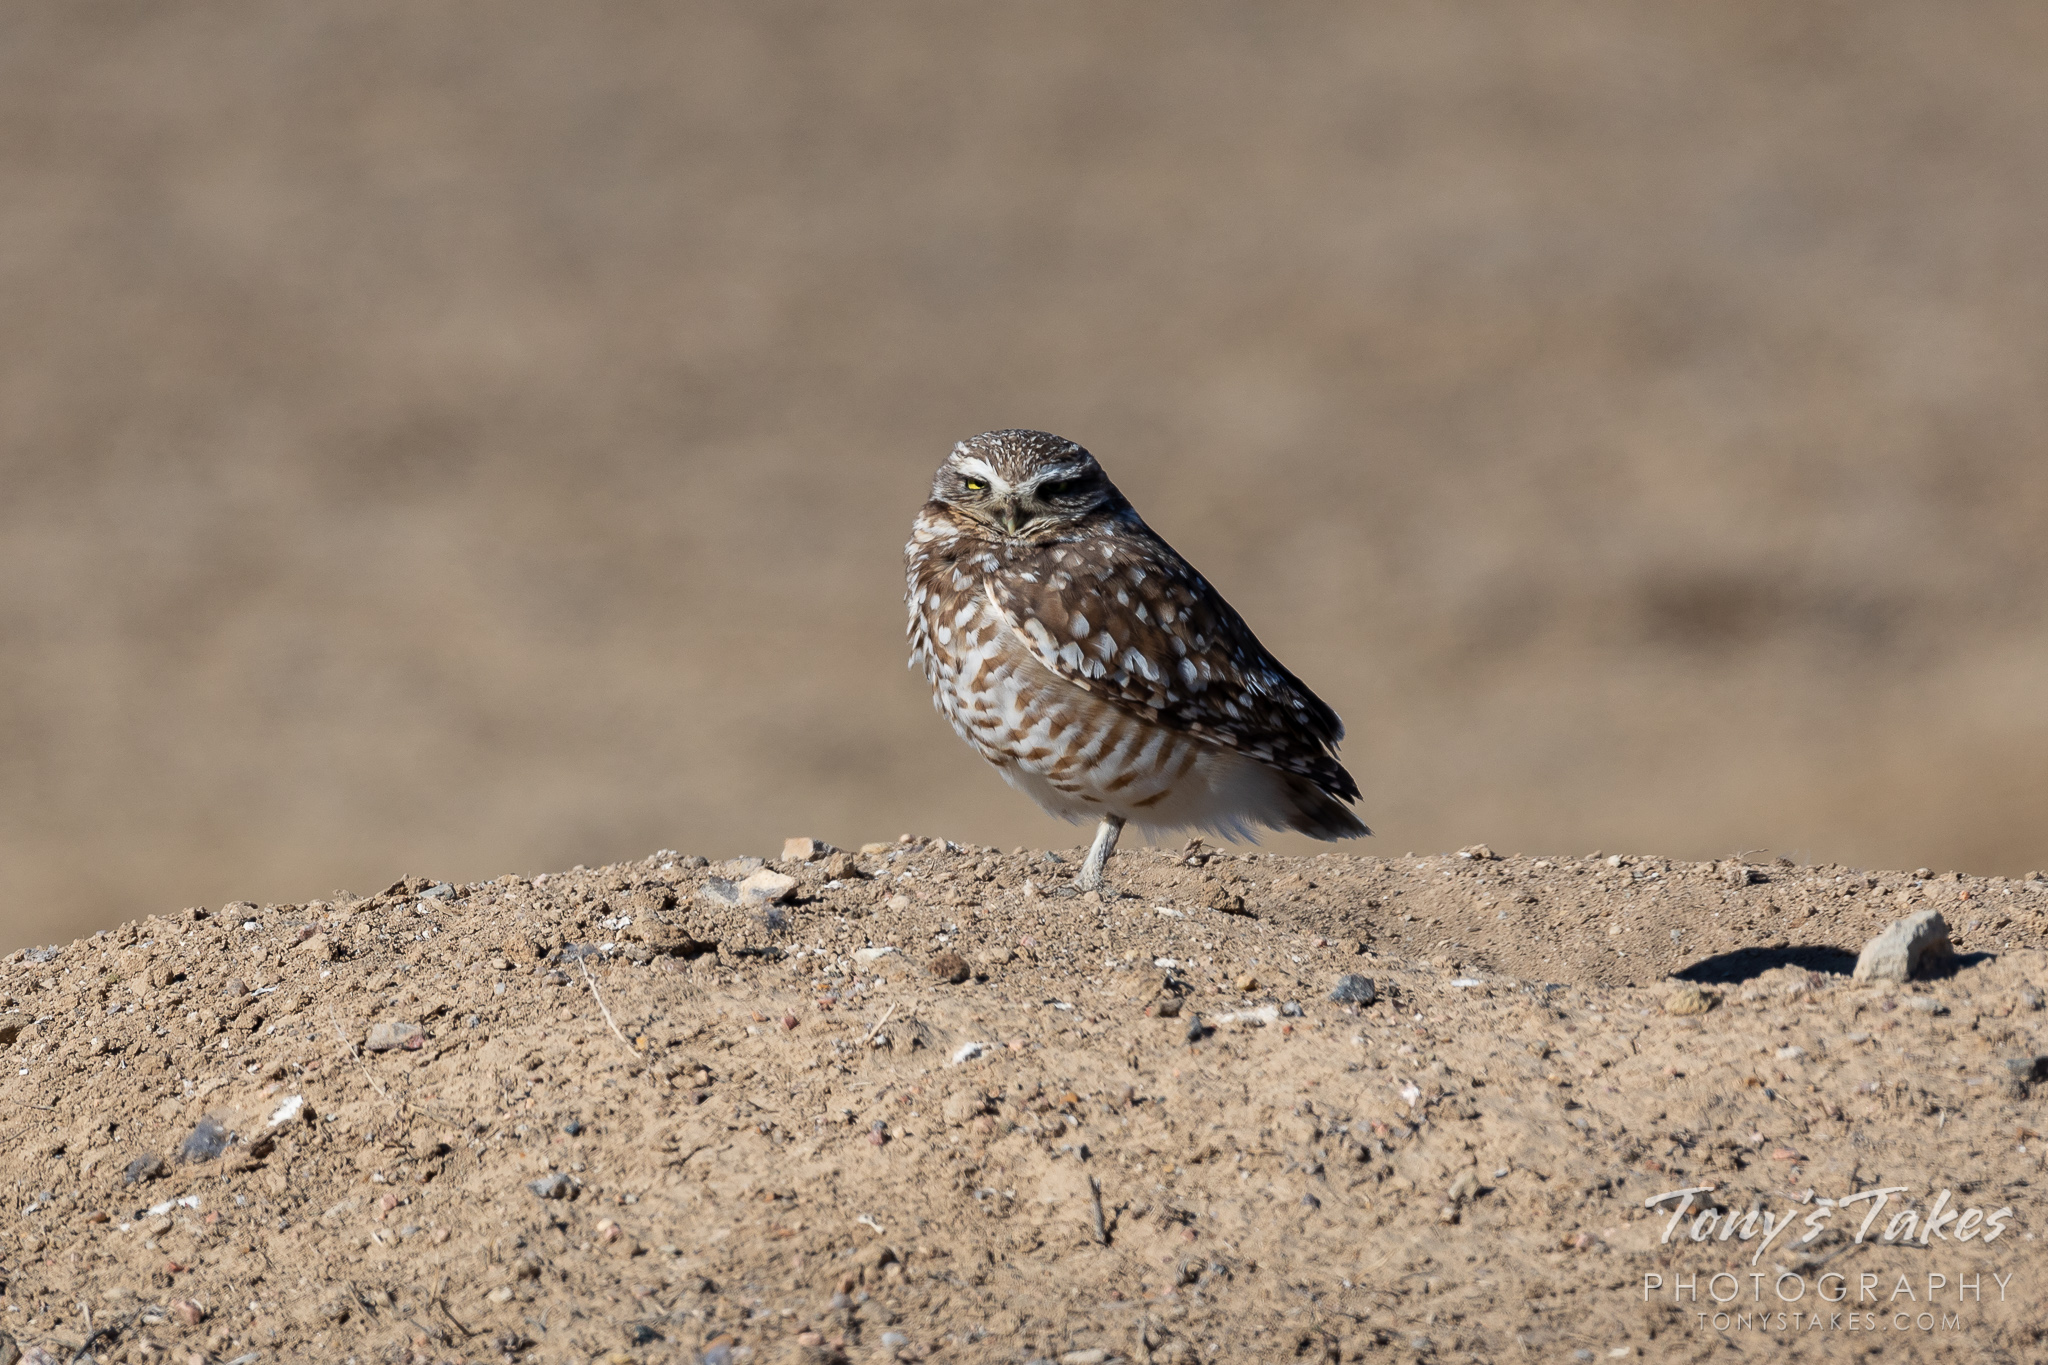 A burrowing owl looks sleepy as it stands by its burrow. (© Tony's Takes)